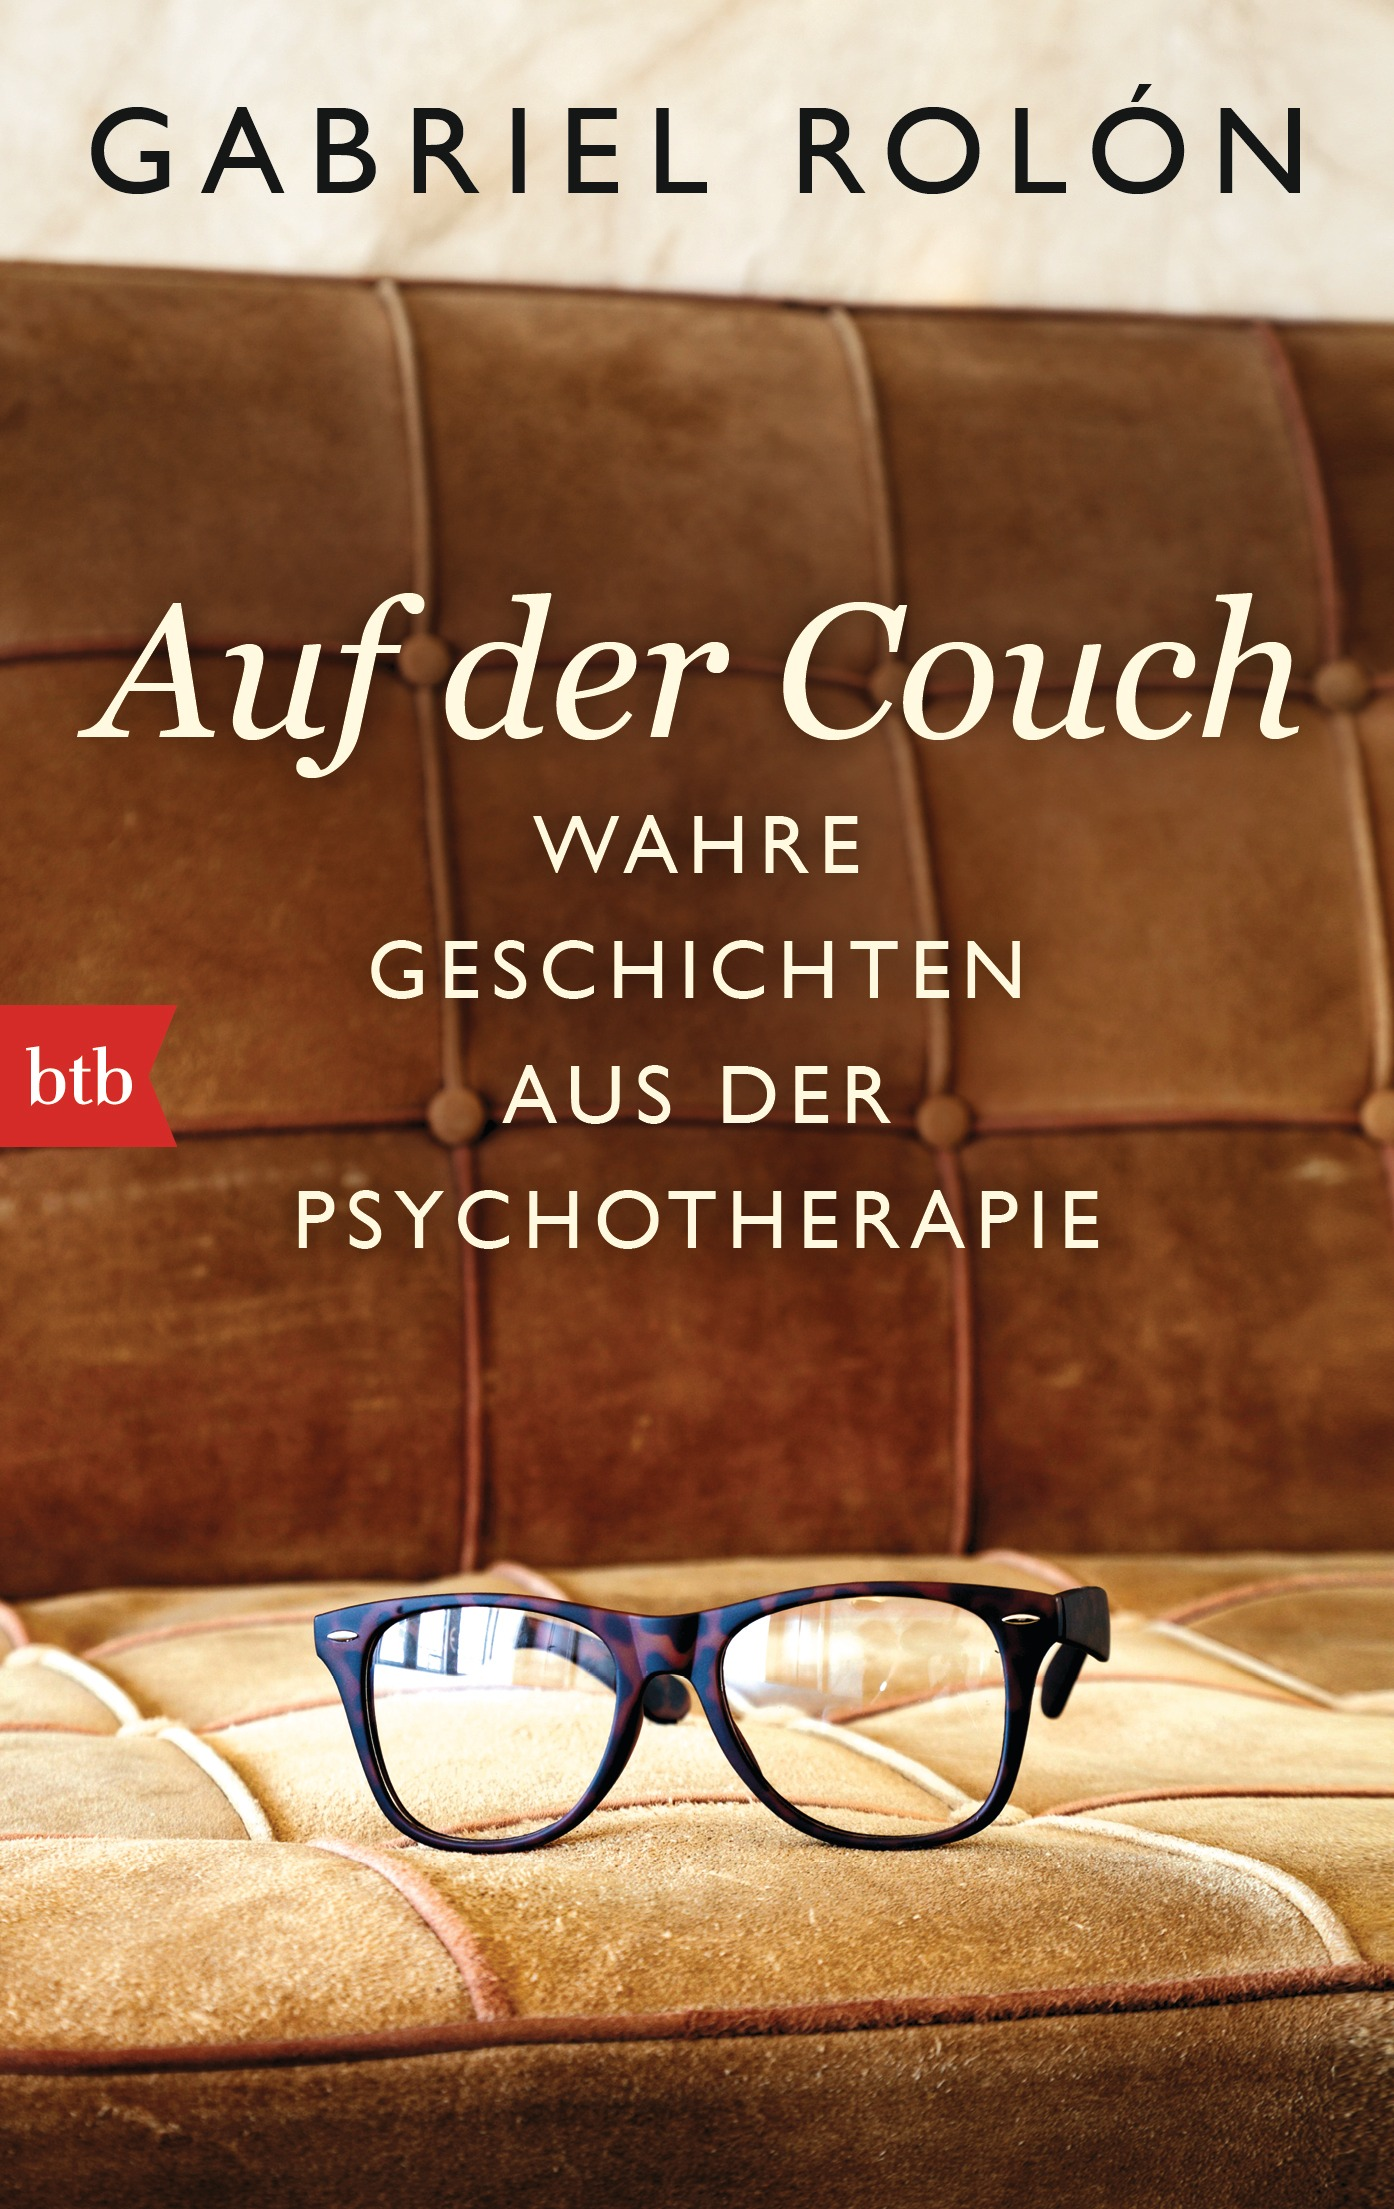 gabriel rol n auf der couch btb verlag taschenbuch. Black Bedroom Furniture Sets. Home Design Ideas